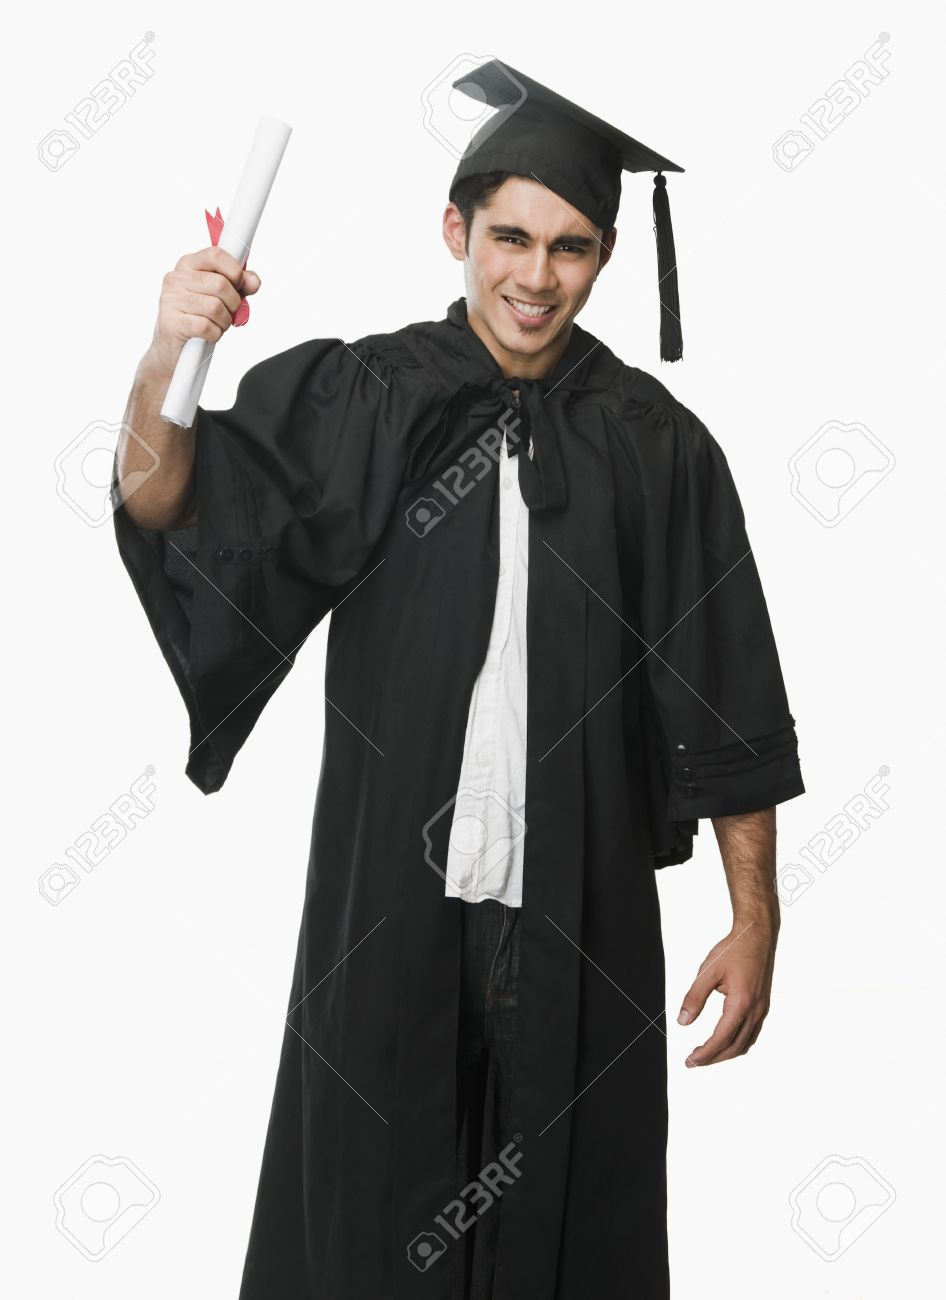 Man In A Graduation Gown Holding A Diploma Stock Photo, Picture And ...